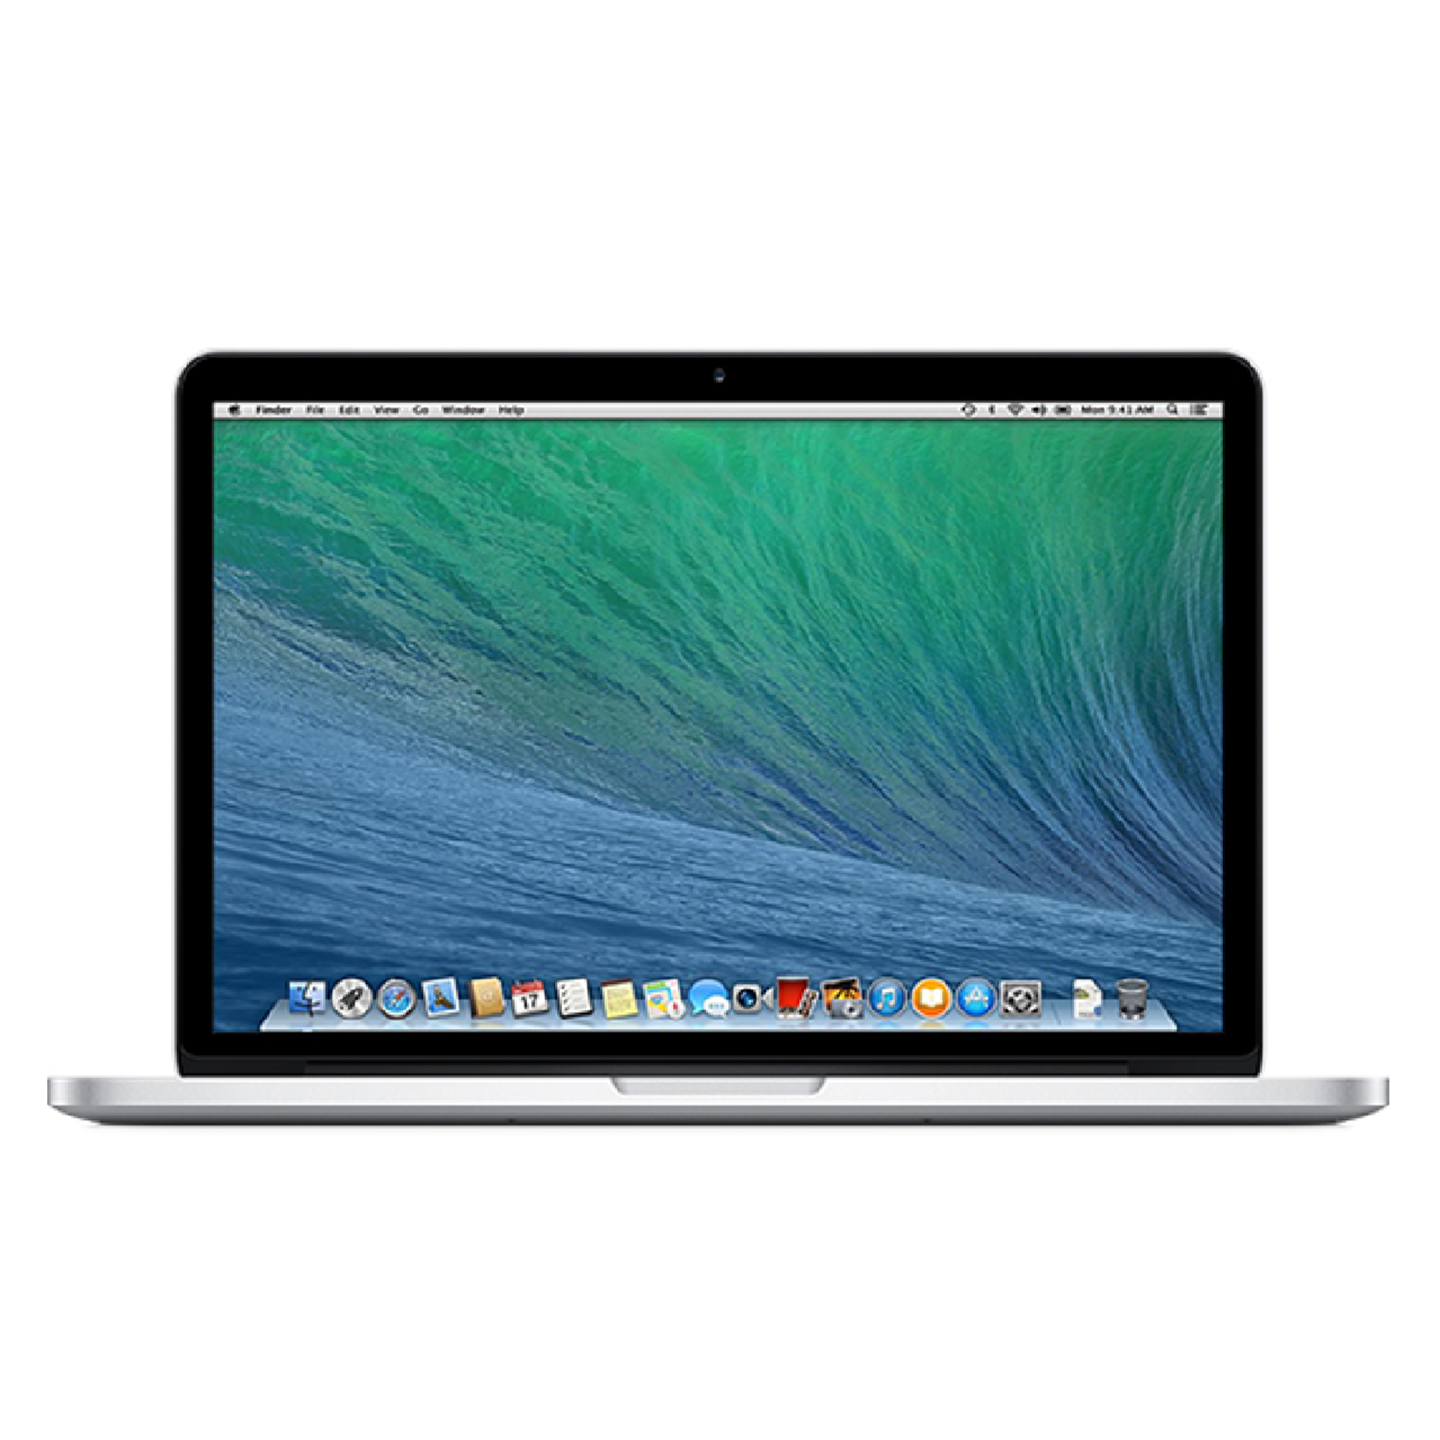 MacBook Pro (Retina, 13-inch, Mid 2014)Core i7/16GB/SSD 1TB E765